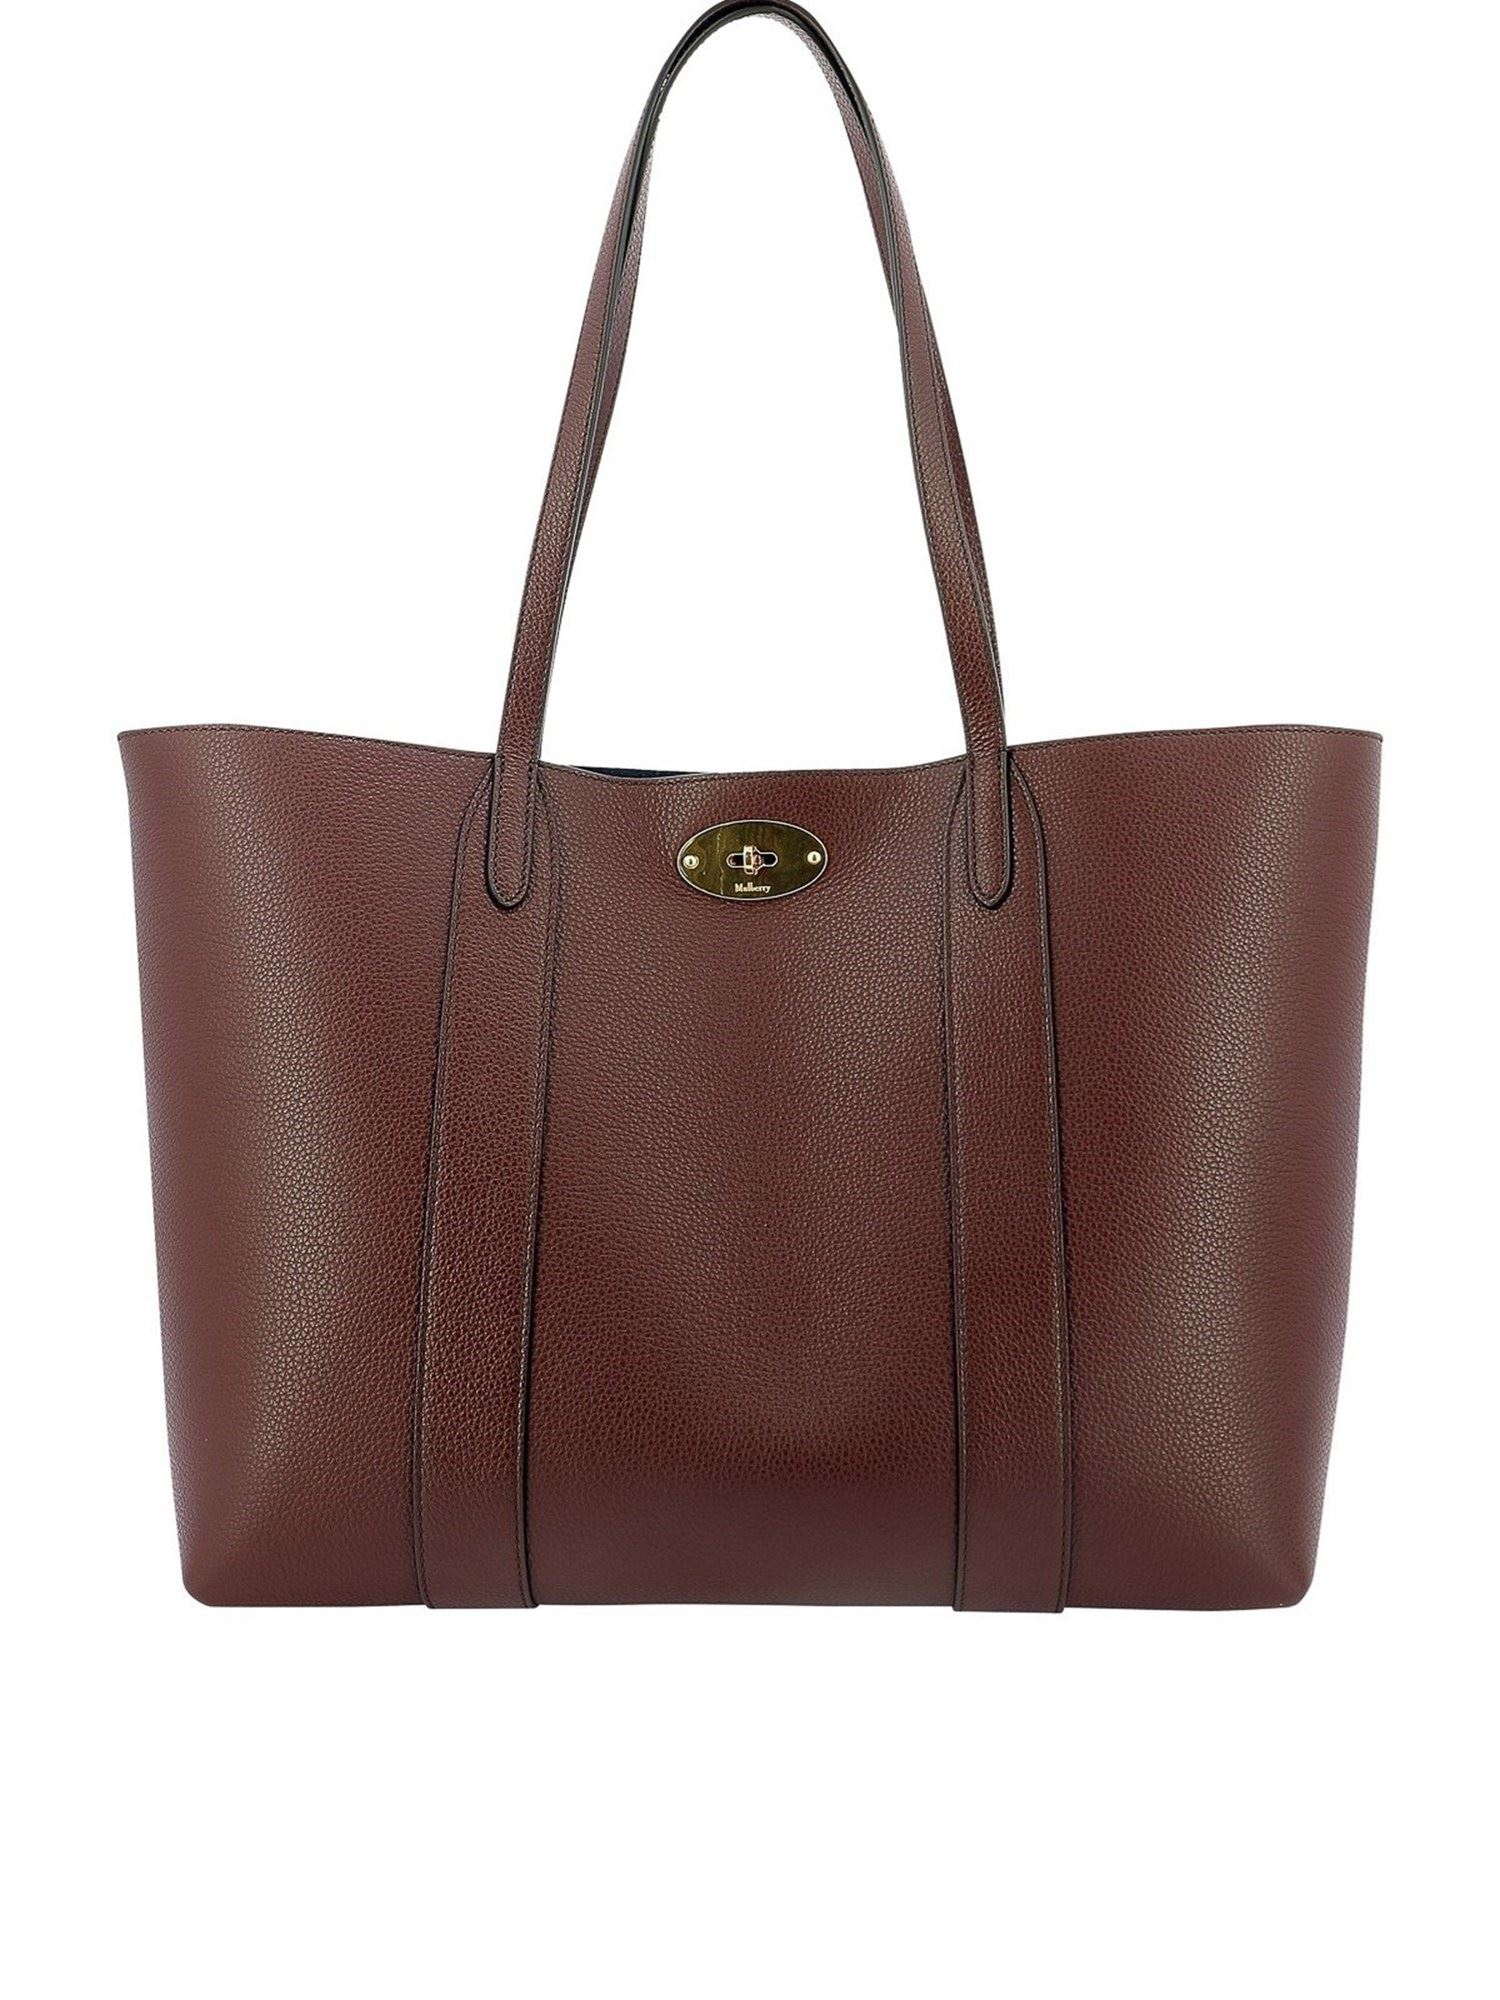 Mulberry BAYSWATER SMALL TOTE IN BURGUNDY COLOR